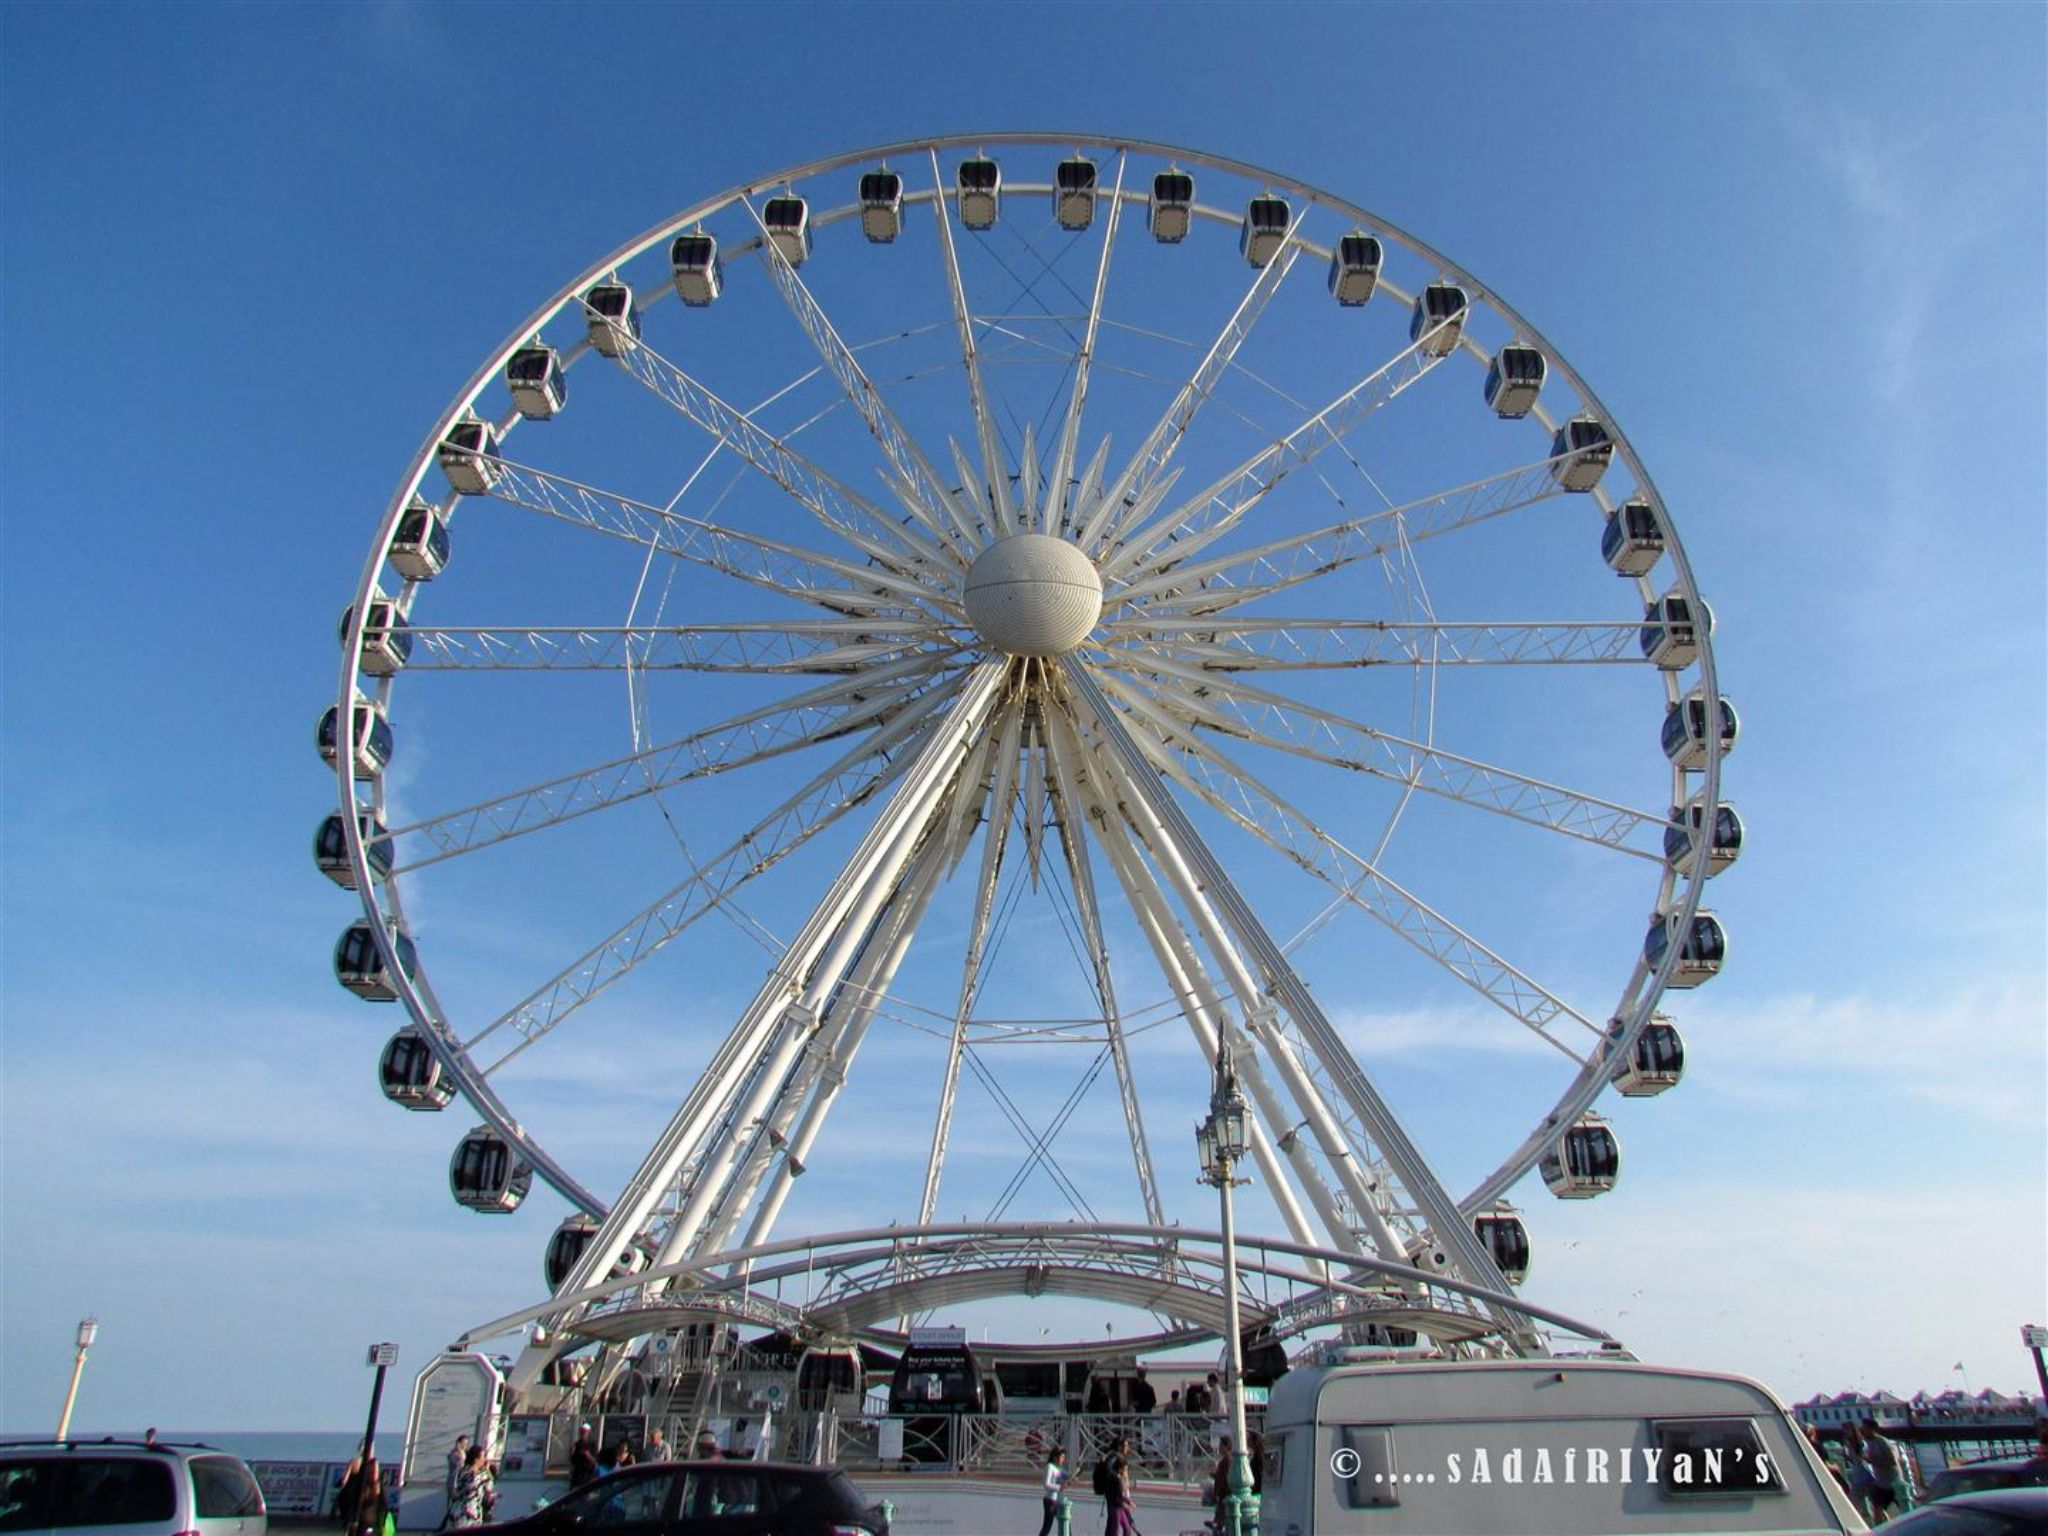 the brighton eye by sadafriyan